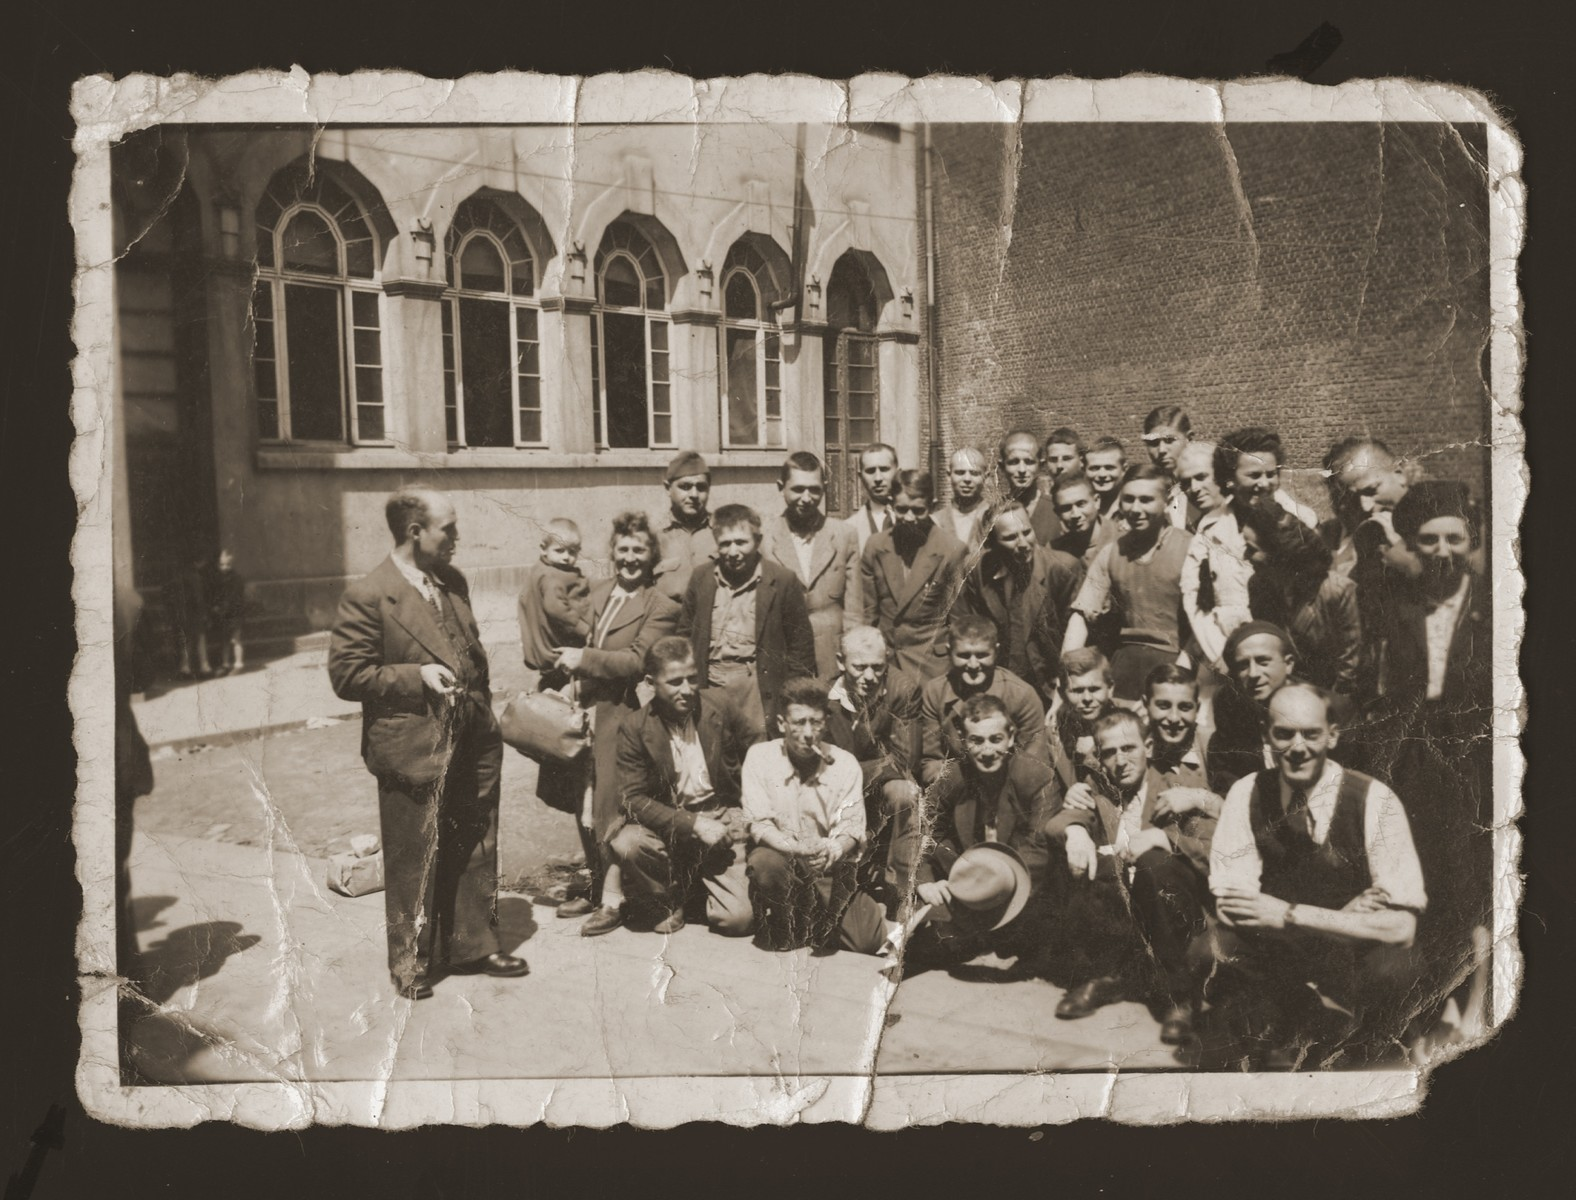 Marjana Ulman (standing, far right) and David Majer Zalc (kneeling, far right) among a group of young people posing on a street corner in Antwerp.